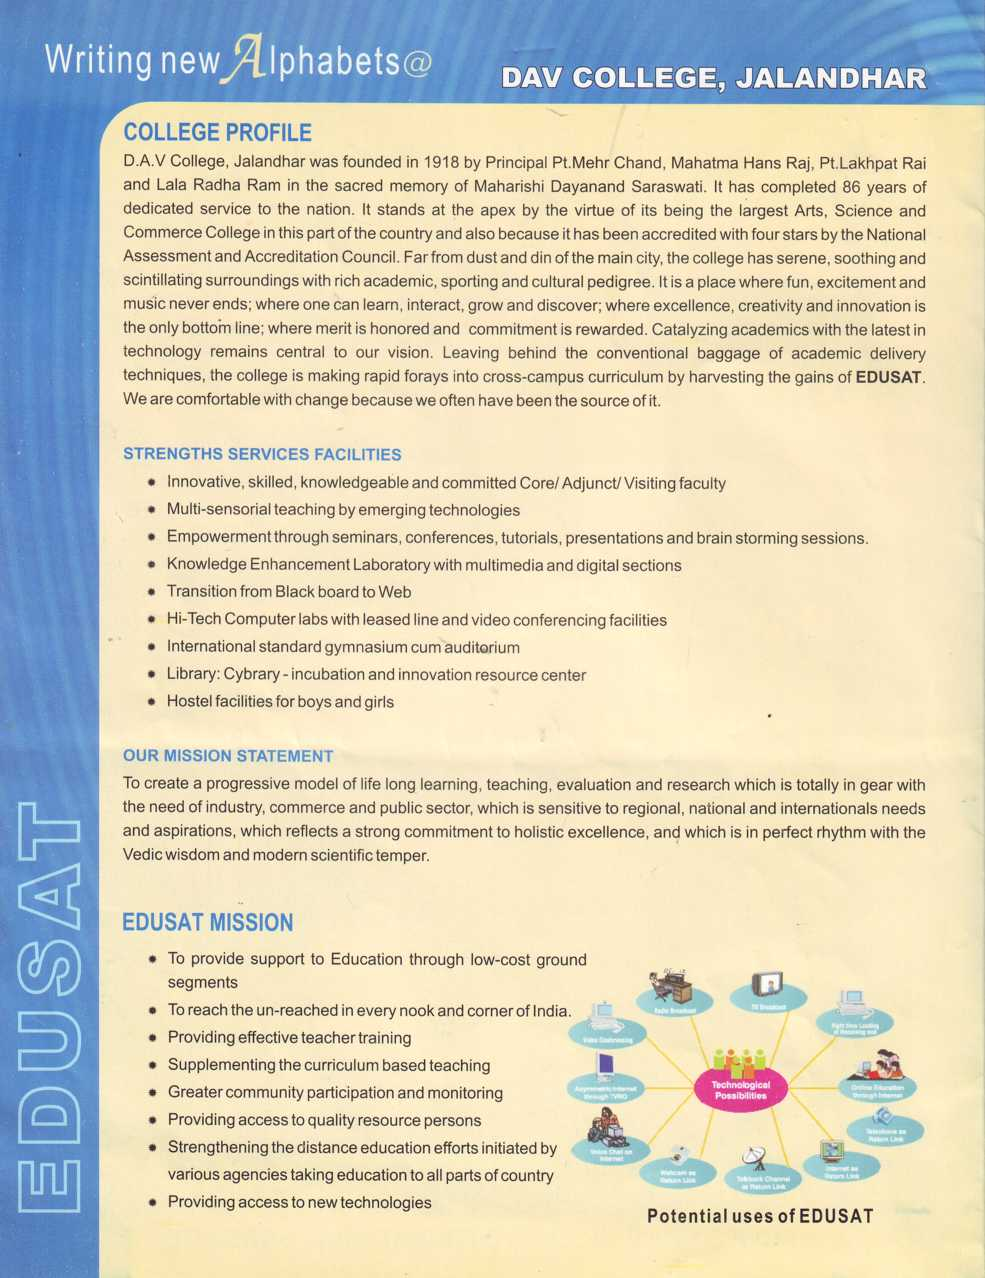 Strengths Services Facilities and Mission Statement (DAV College)